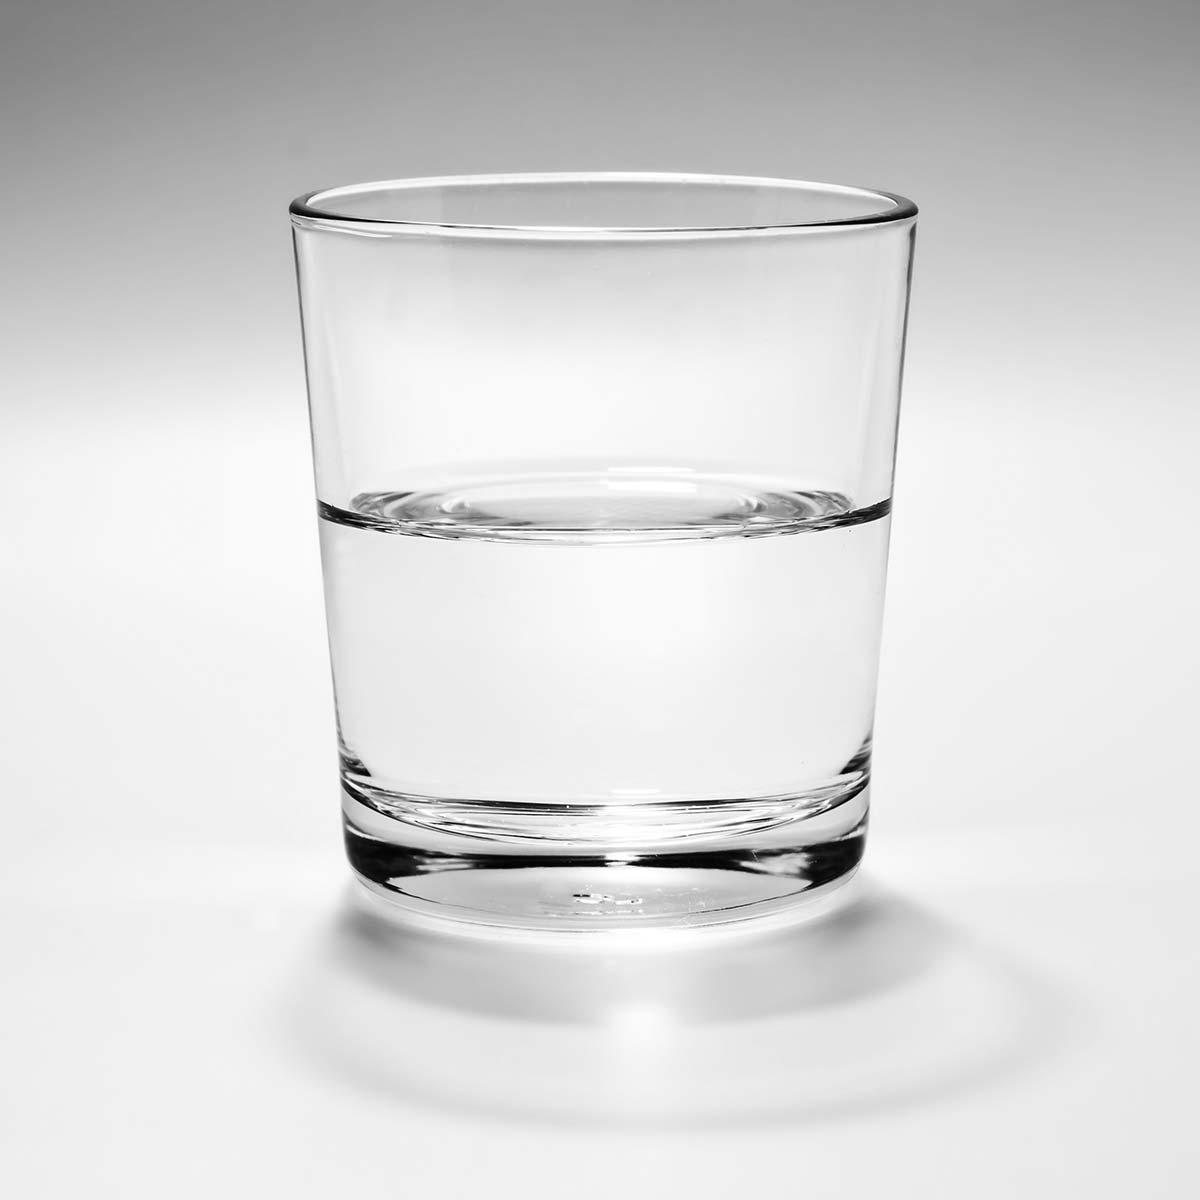 Is It Half Full, Half Empty or Full